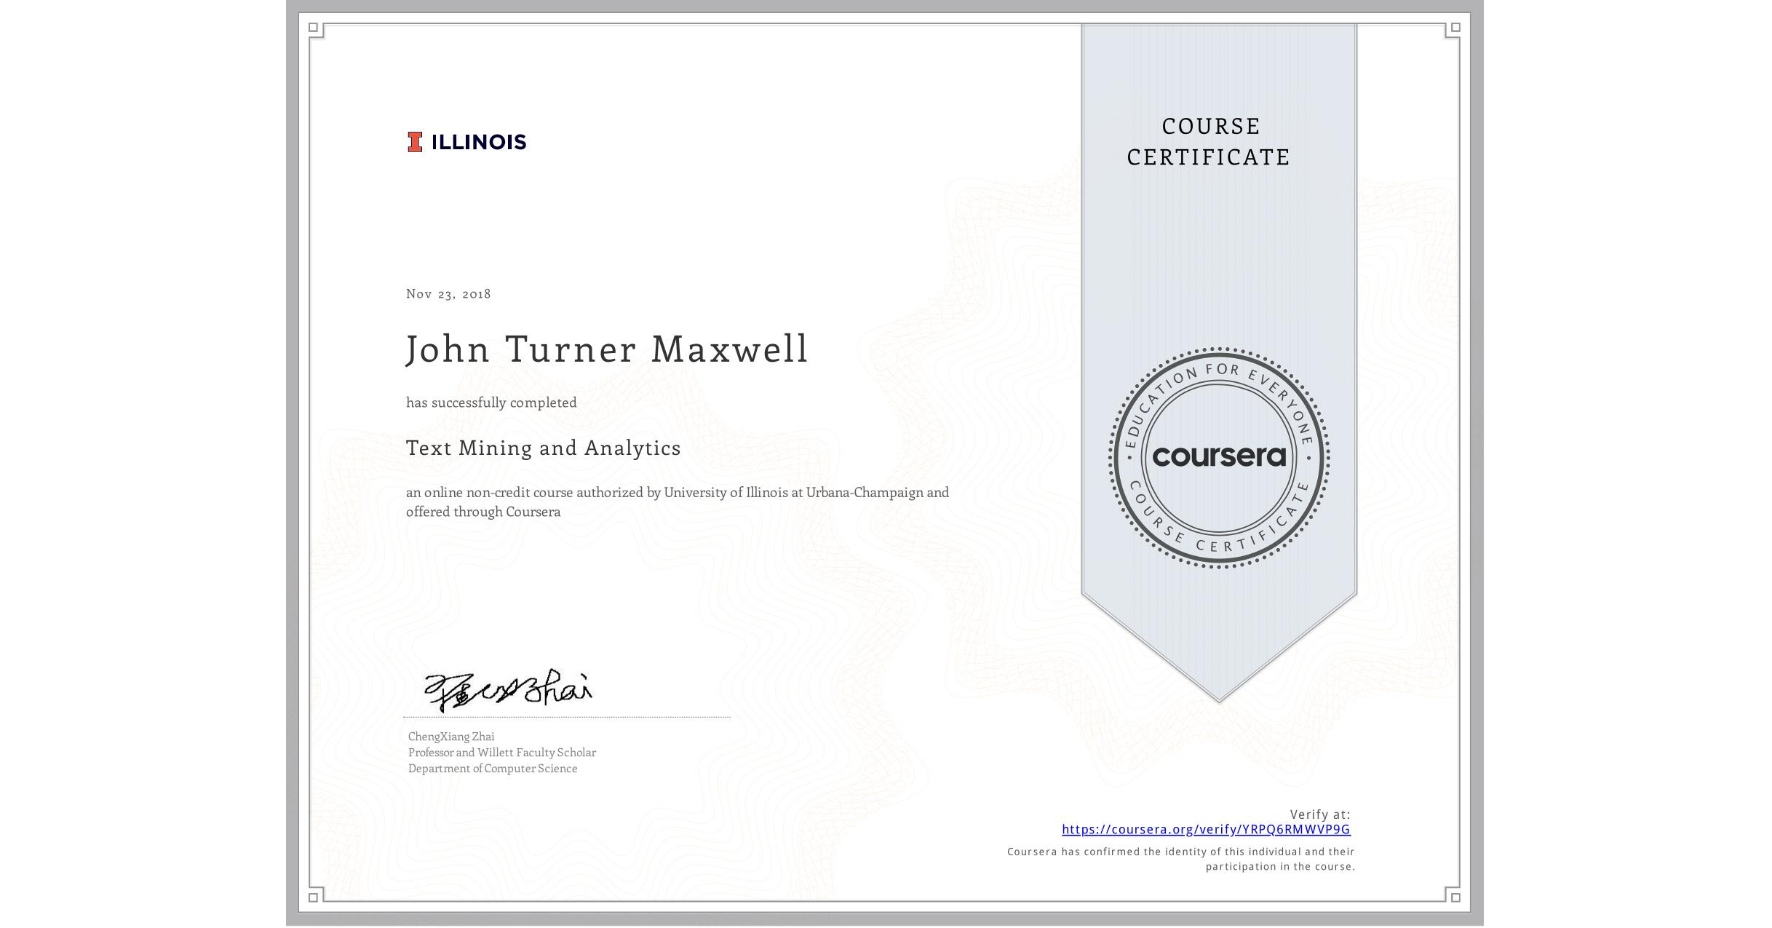 View certificate for John Turner Maxwell, Text Mining and Analytics, an online non-credit course authorized by University of Illinois at Urbana-Champaign and offered through Coursera